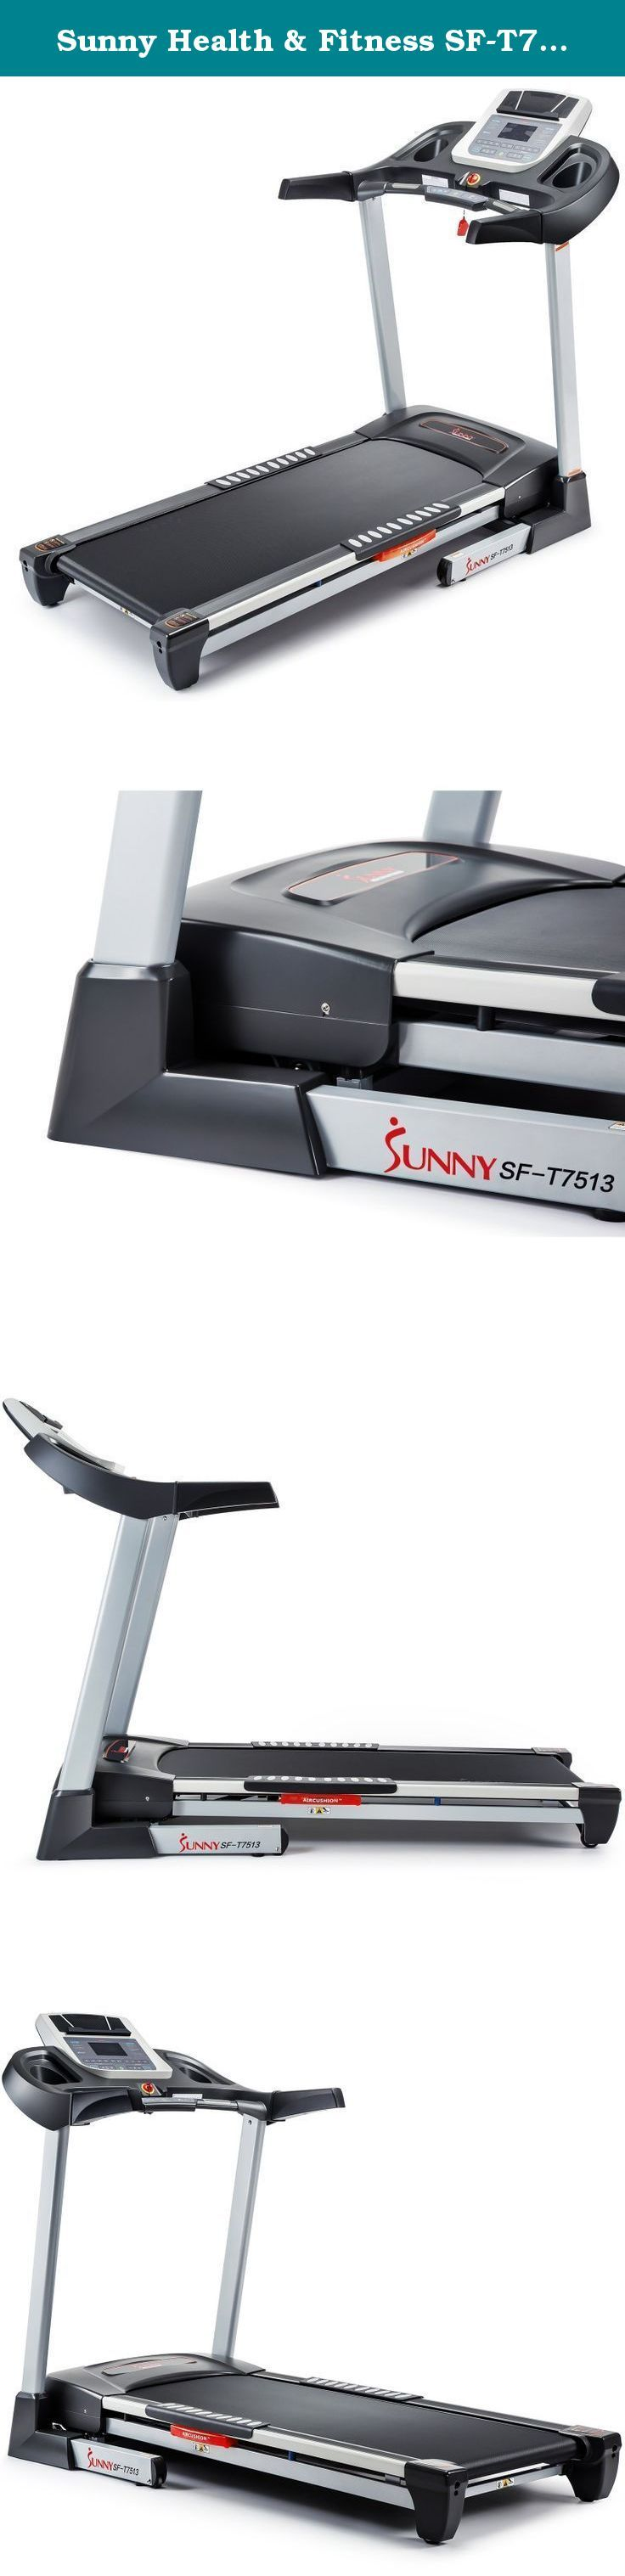 Sunny Health & Fitness SF-T7513 Treadmill. Get ready for swimsuit season in style with the Sunny Health & Fitness SF-T7513 Treadmill. This treadmill has a multi-function design that can be increased in intensity as your stamina grows and offers plenty of feedback and entertainment options. An LCD display and e-running app lets you chart your workout progress both during each individual workout and over a period of time. Two cup-holders let you stay hydrated while media slots (for MP3 and...